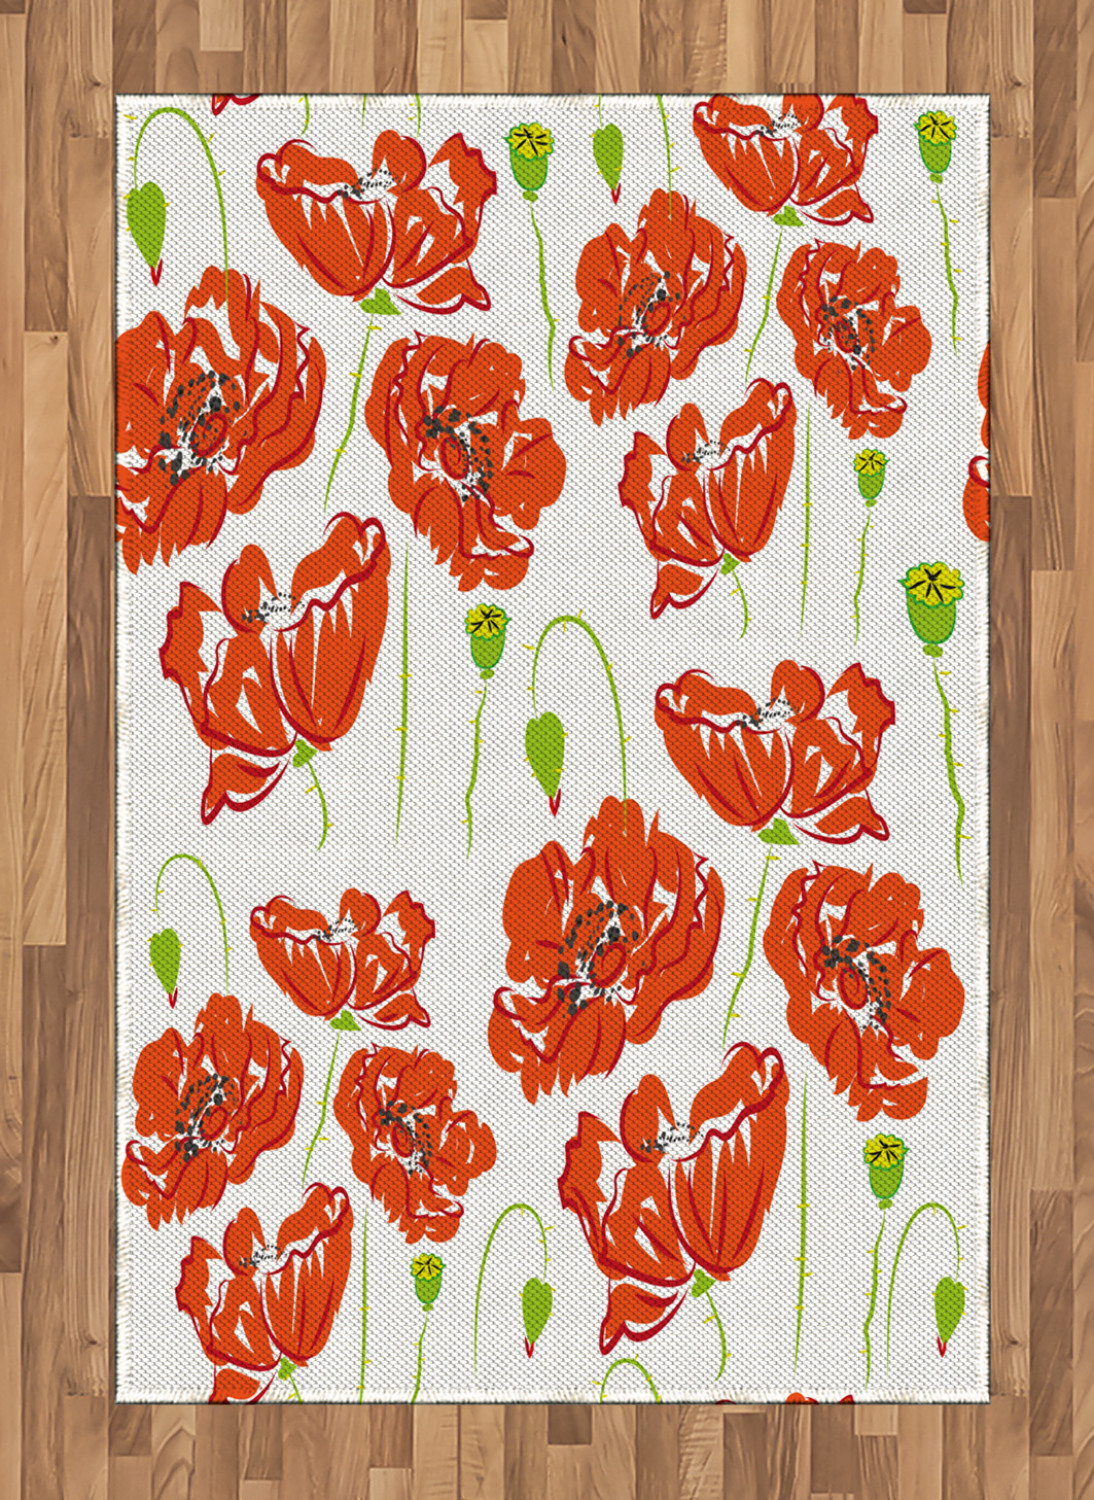 Anemone-Flower-Area-Rug-Decor-Flat-Woven-Accent-Rug-Home-Decor-2-Sizes-Ambesonne thumbnail 13